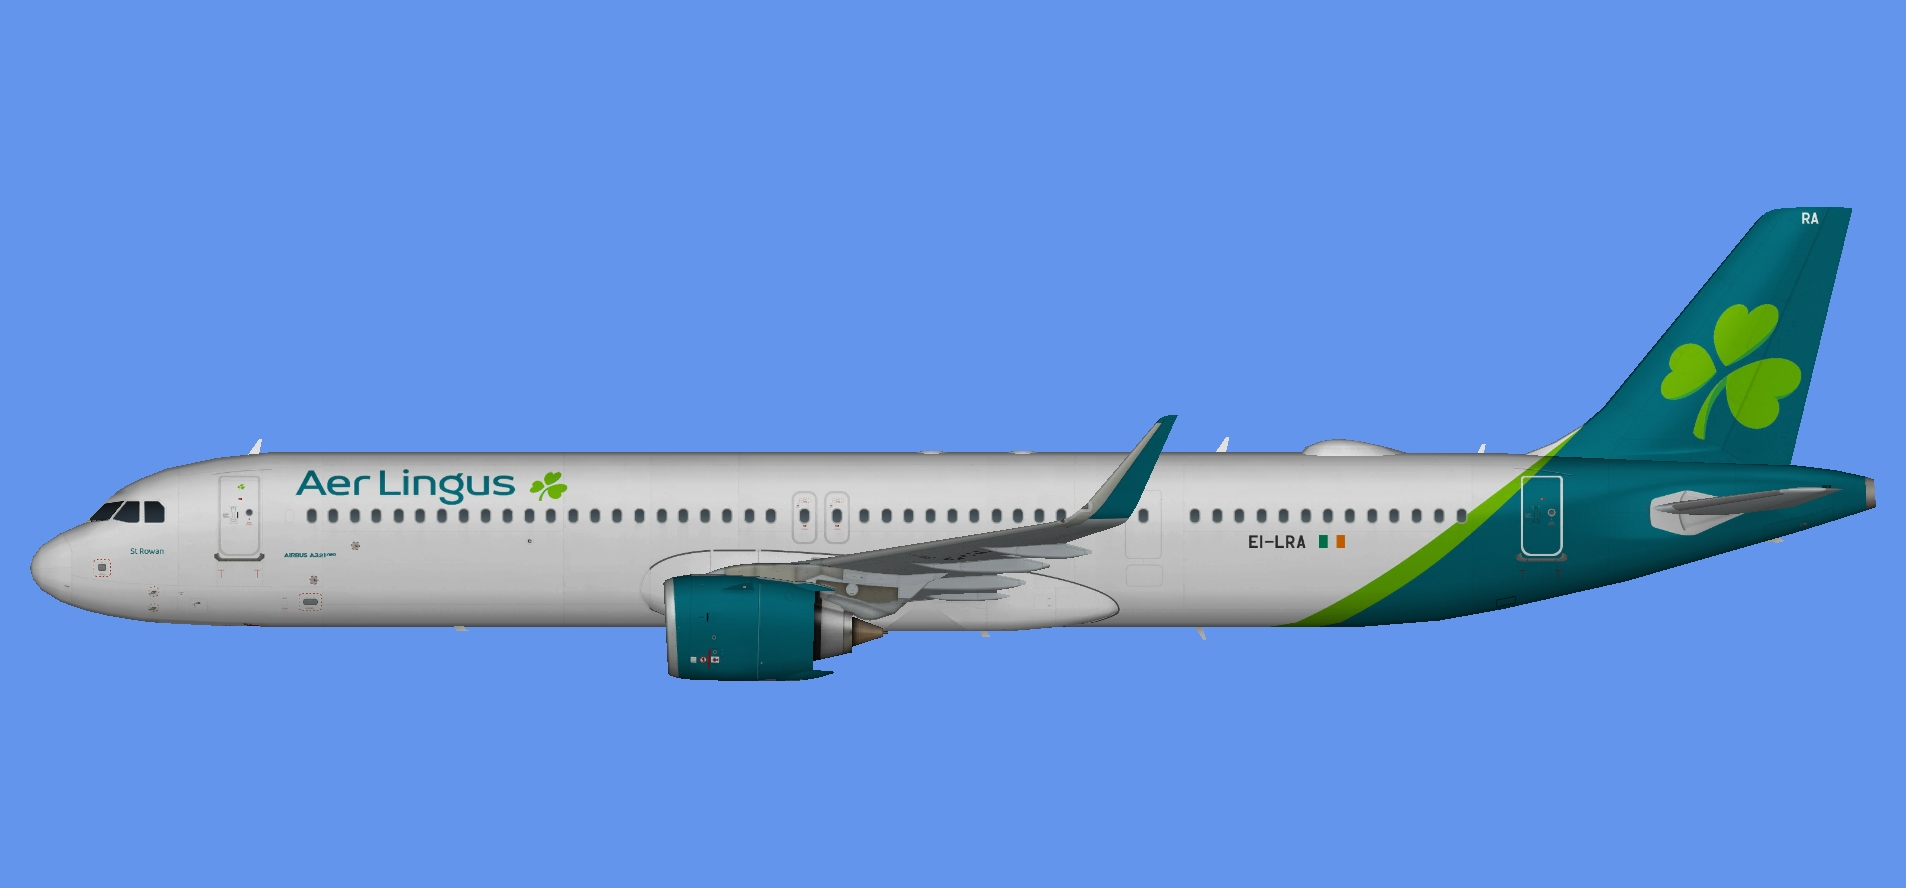 Aer Lingus Airbus A321neo